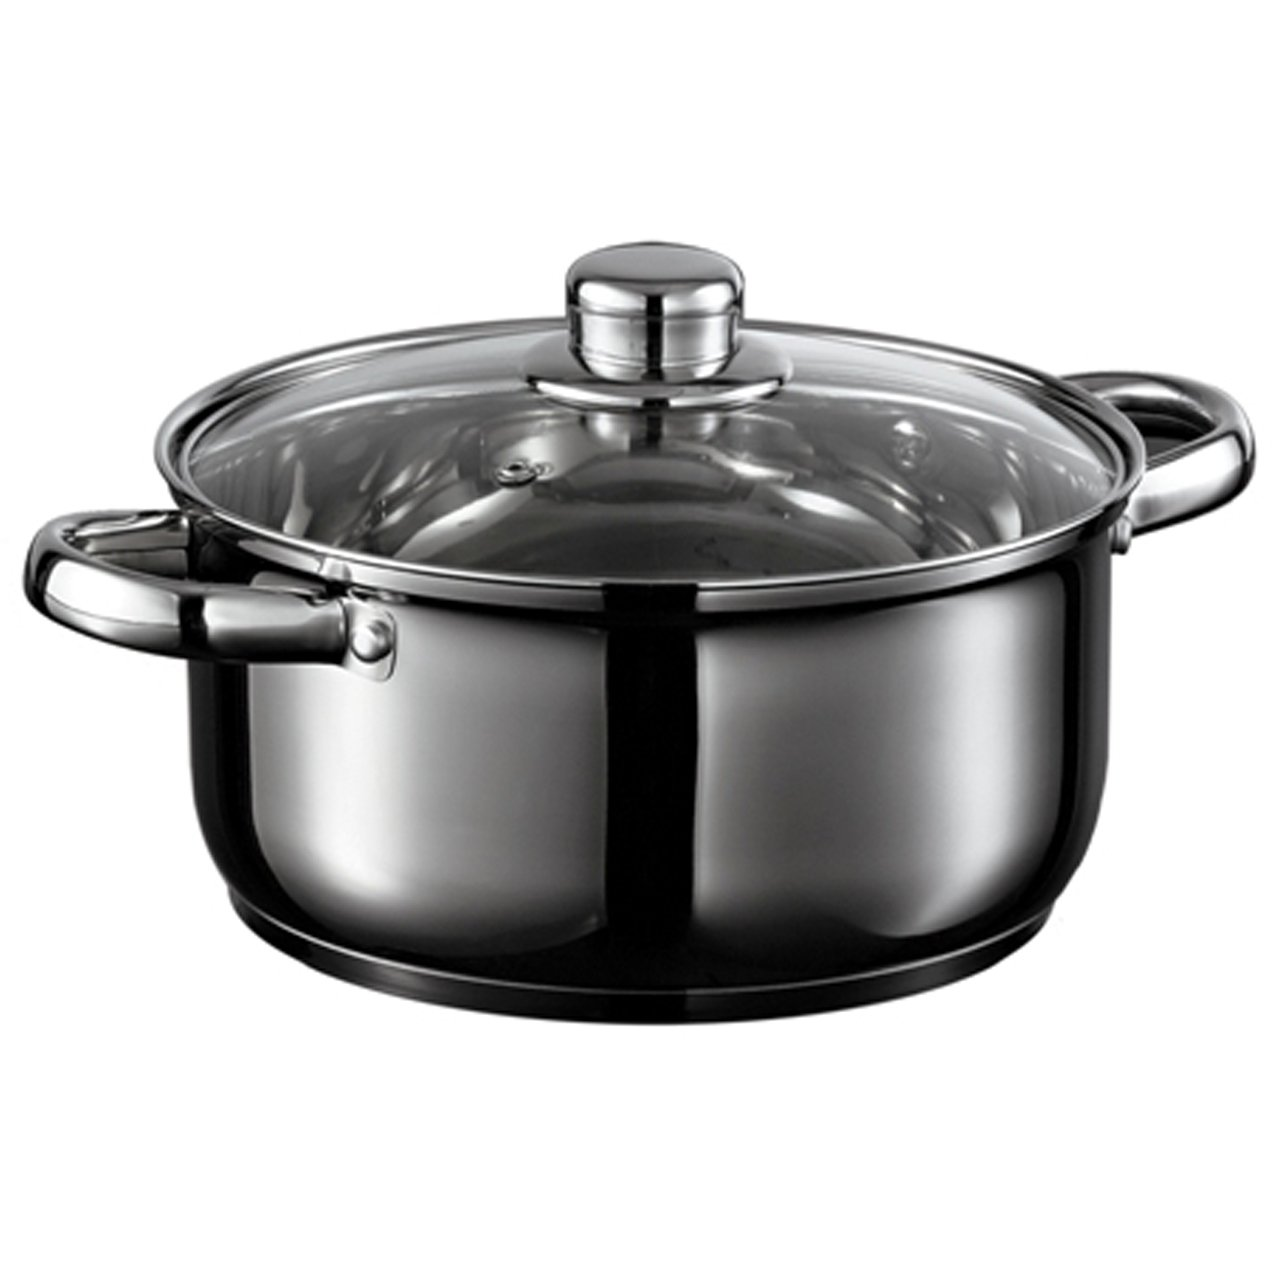 Starfrit 031074 Everyday Basix Stock Pot with Lid, 4.5-Quart, Stainless Steel, Metallic